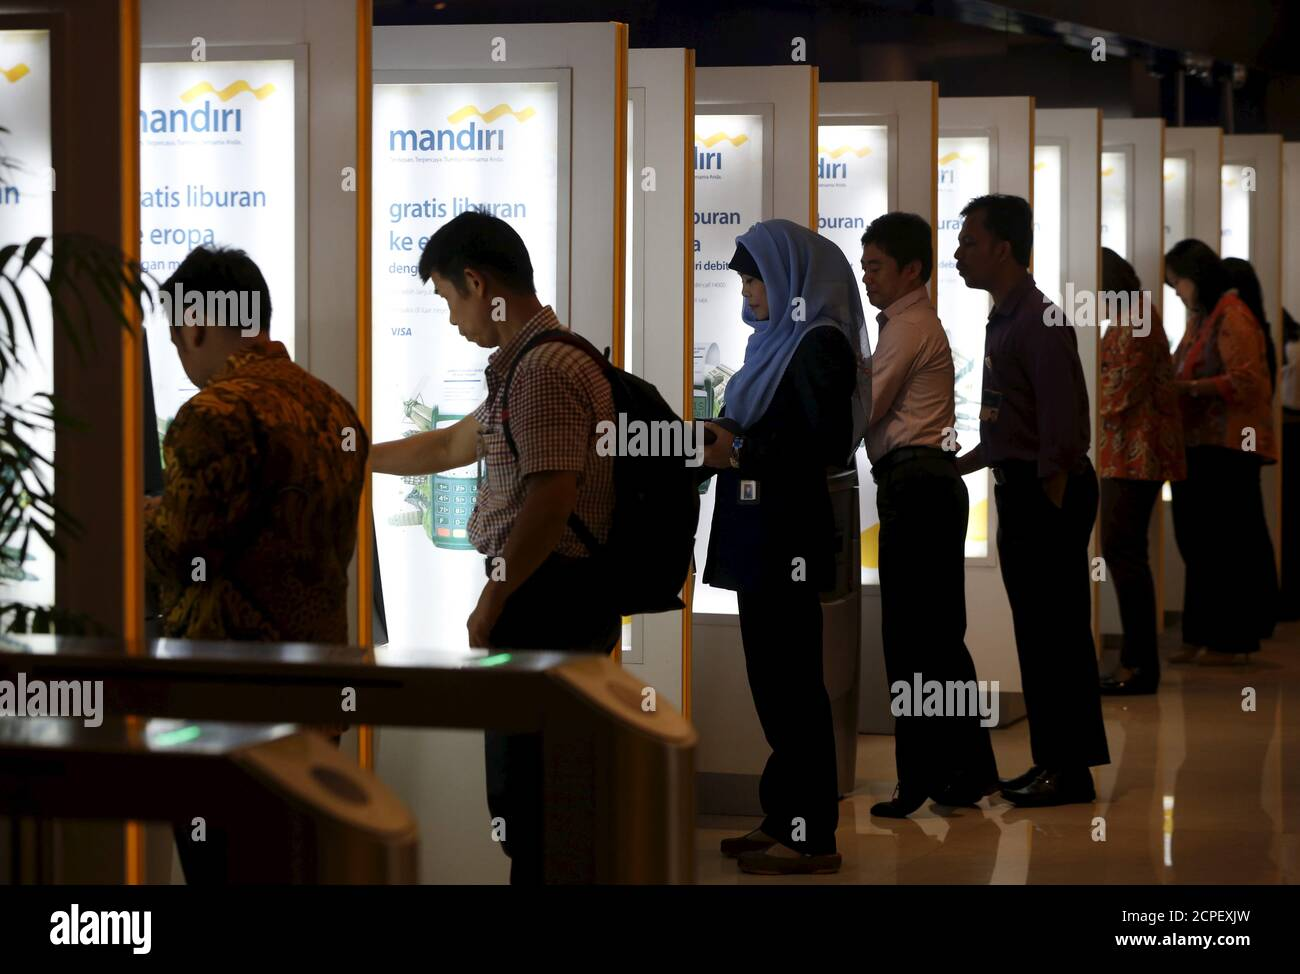 Bank Mandiri High Resolution Stock Photography And Images Alamy